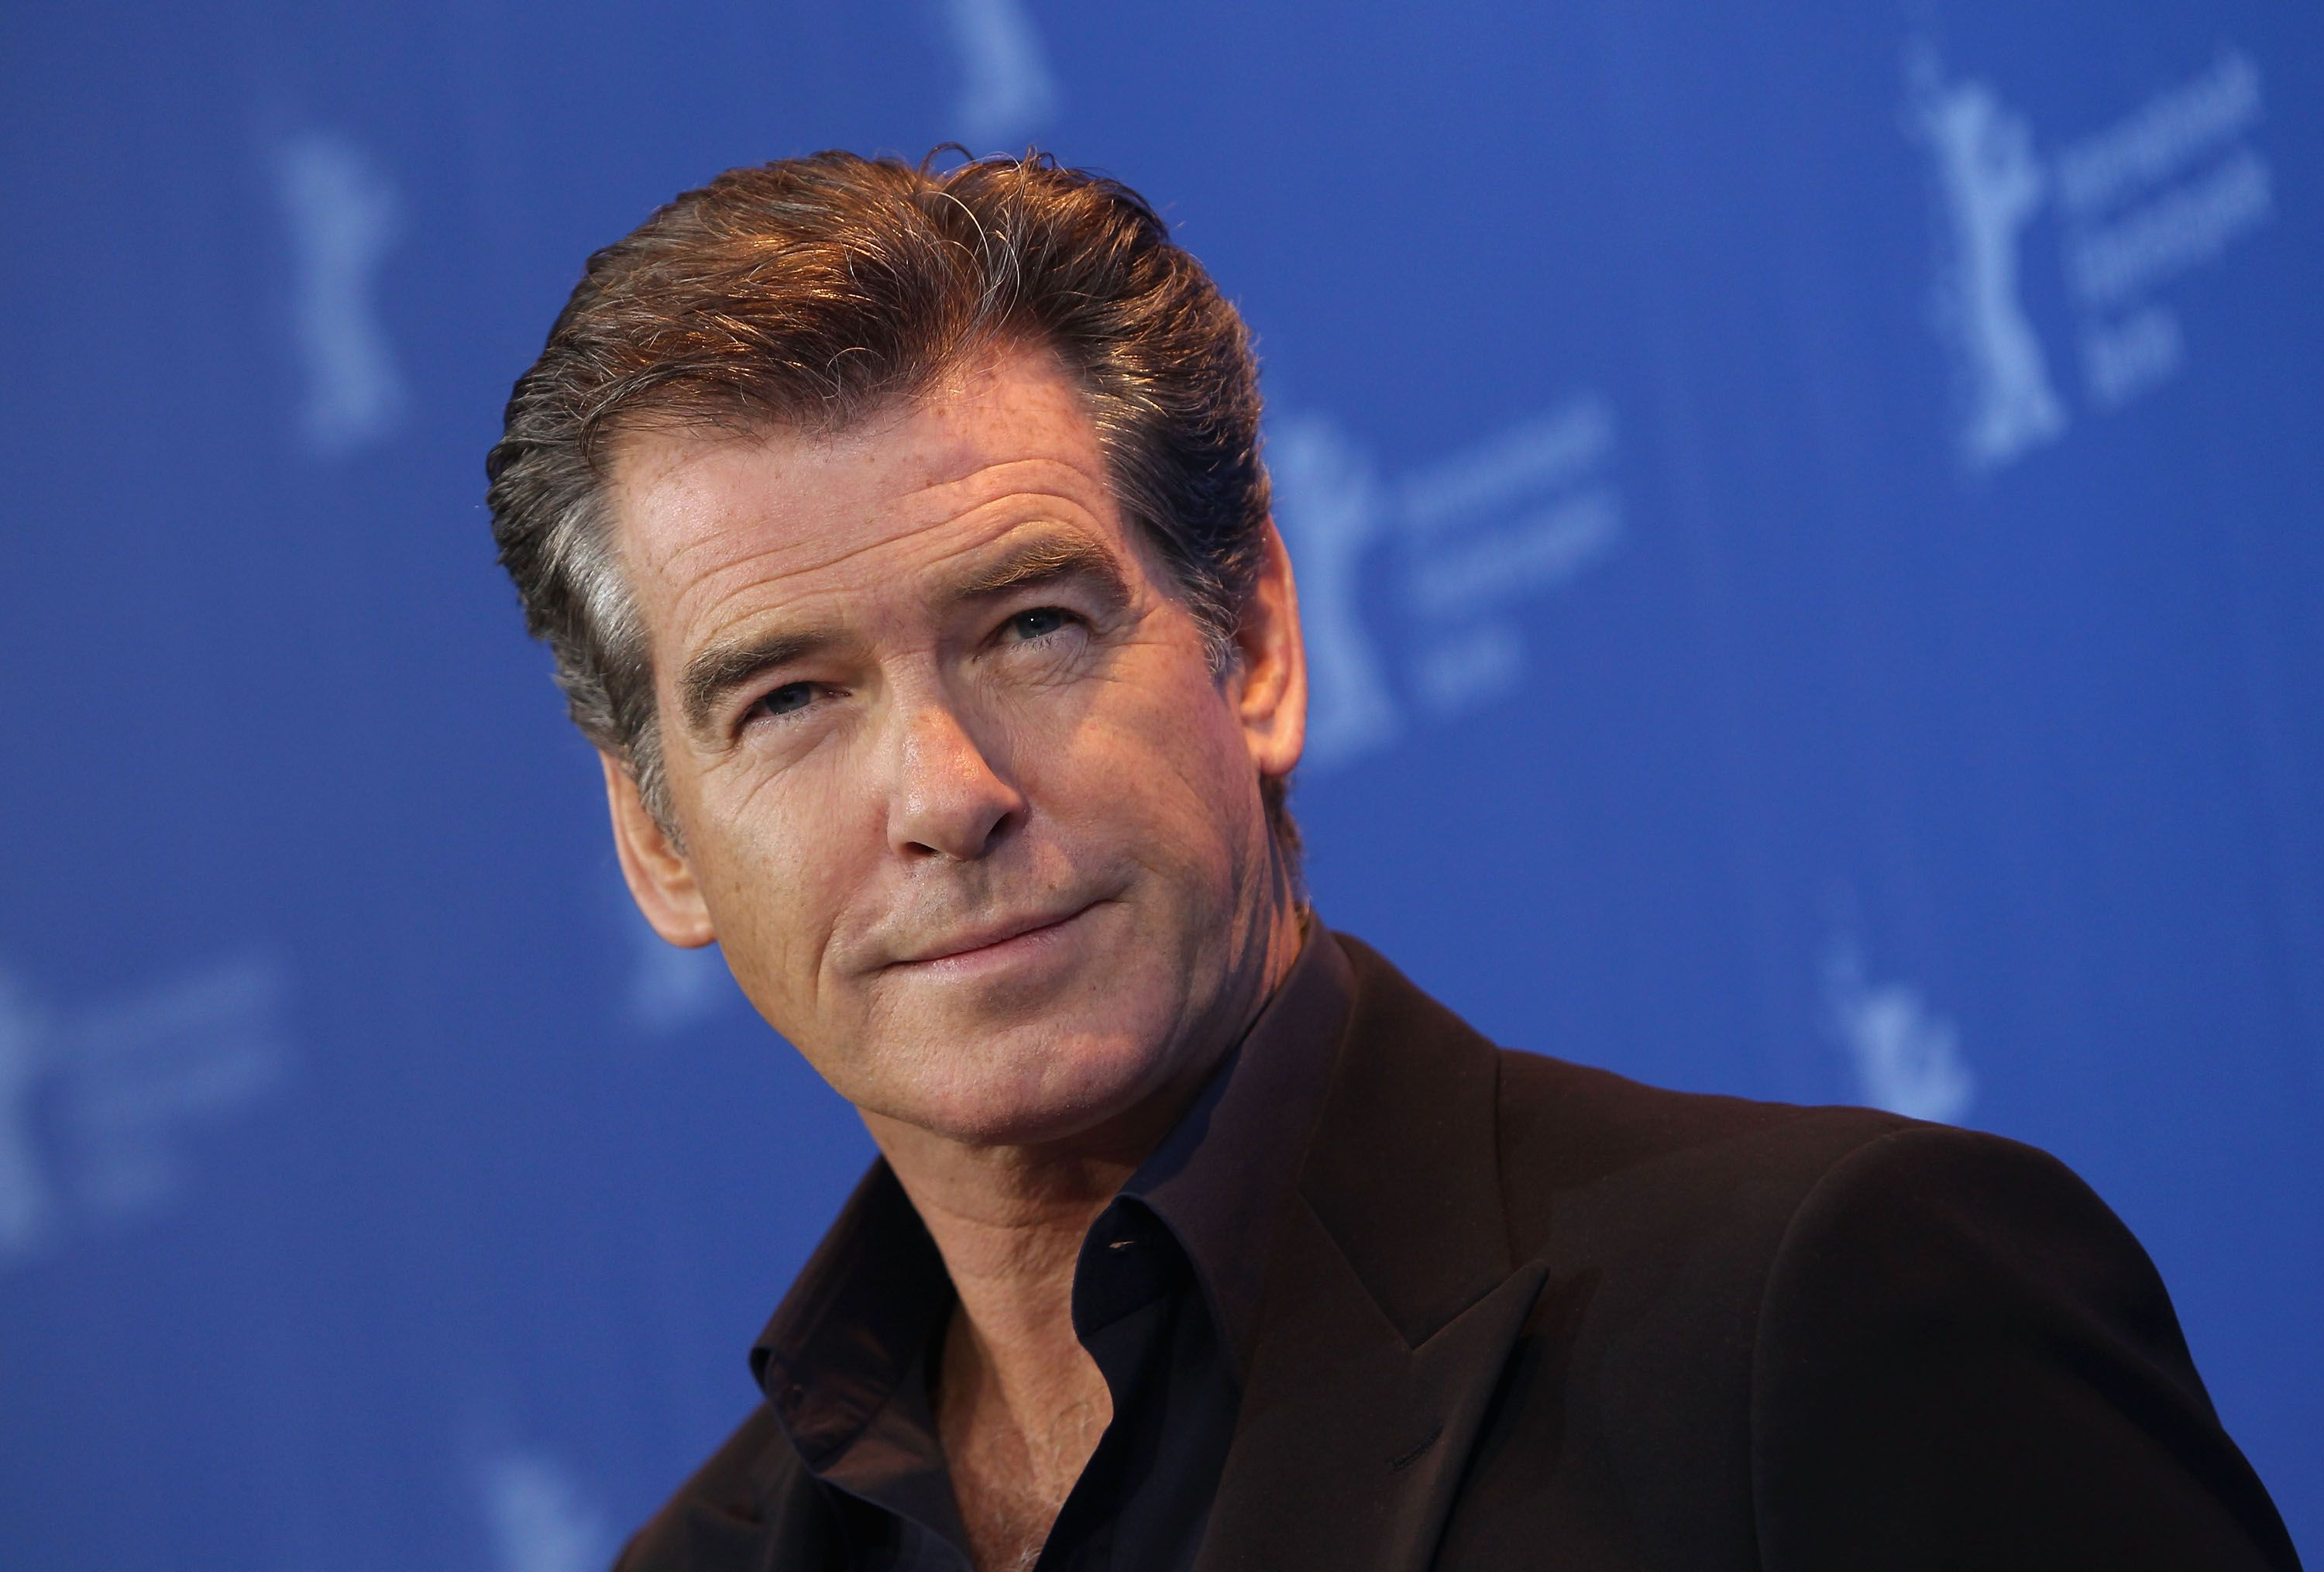 Pierce Brosnan at the 'Ghost Writer' Photocall during day two of the 60th Berlin International Film Festival at the Grand Hyatt Hotel on February 12, 2010 in Berlin, Germany. | Photo: Getty Images